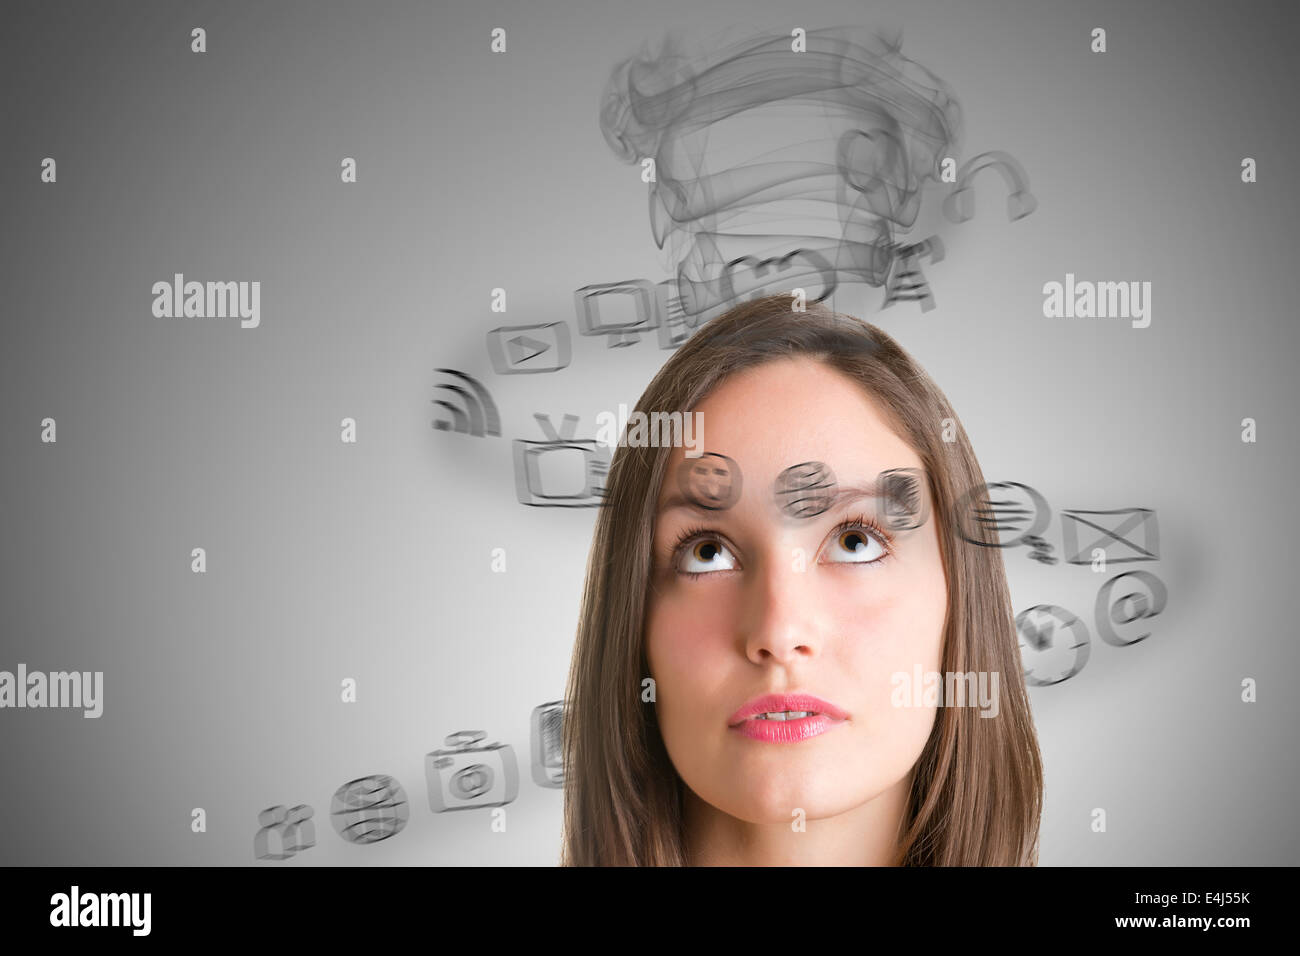 Young woman stressed with social media - Stock Image